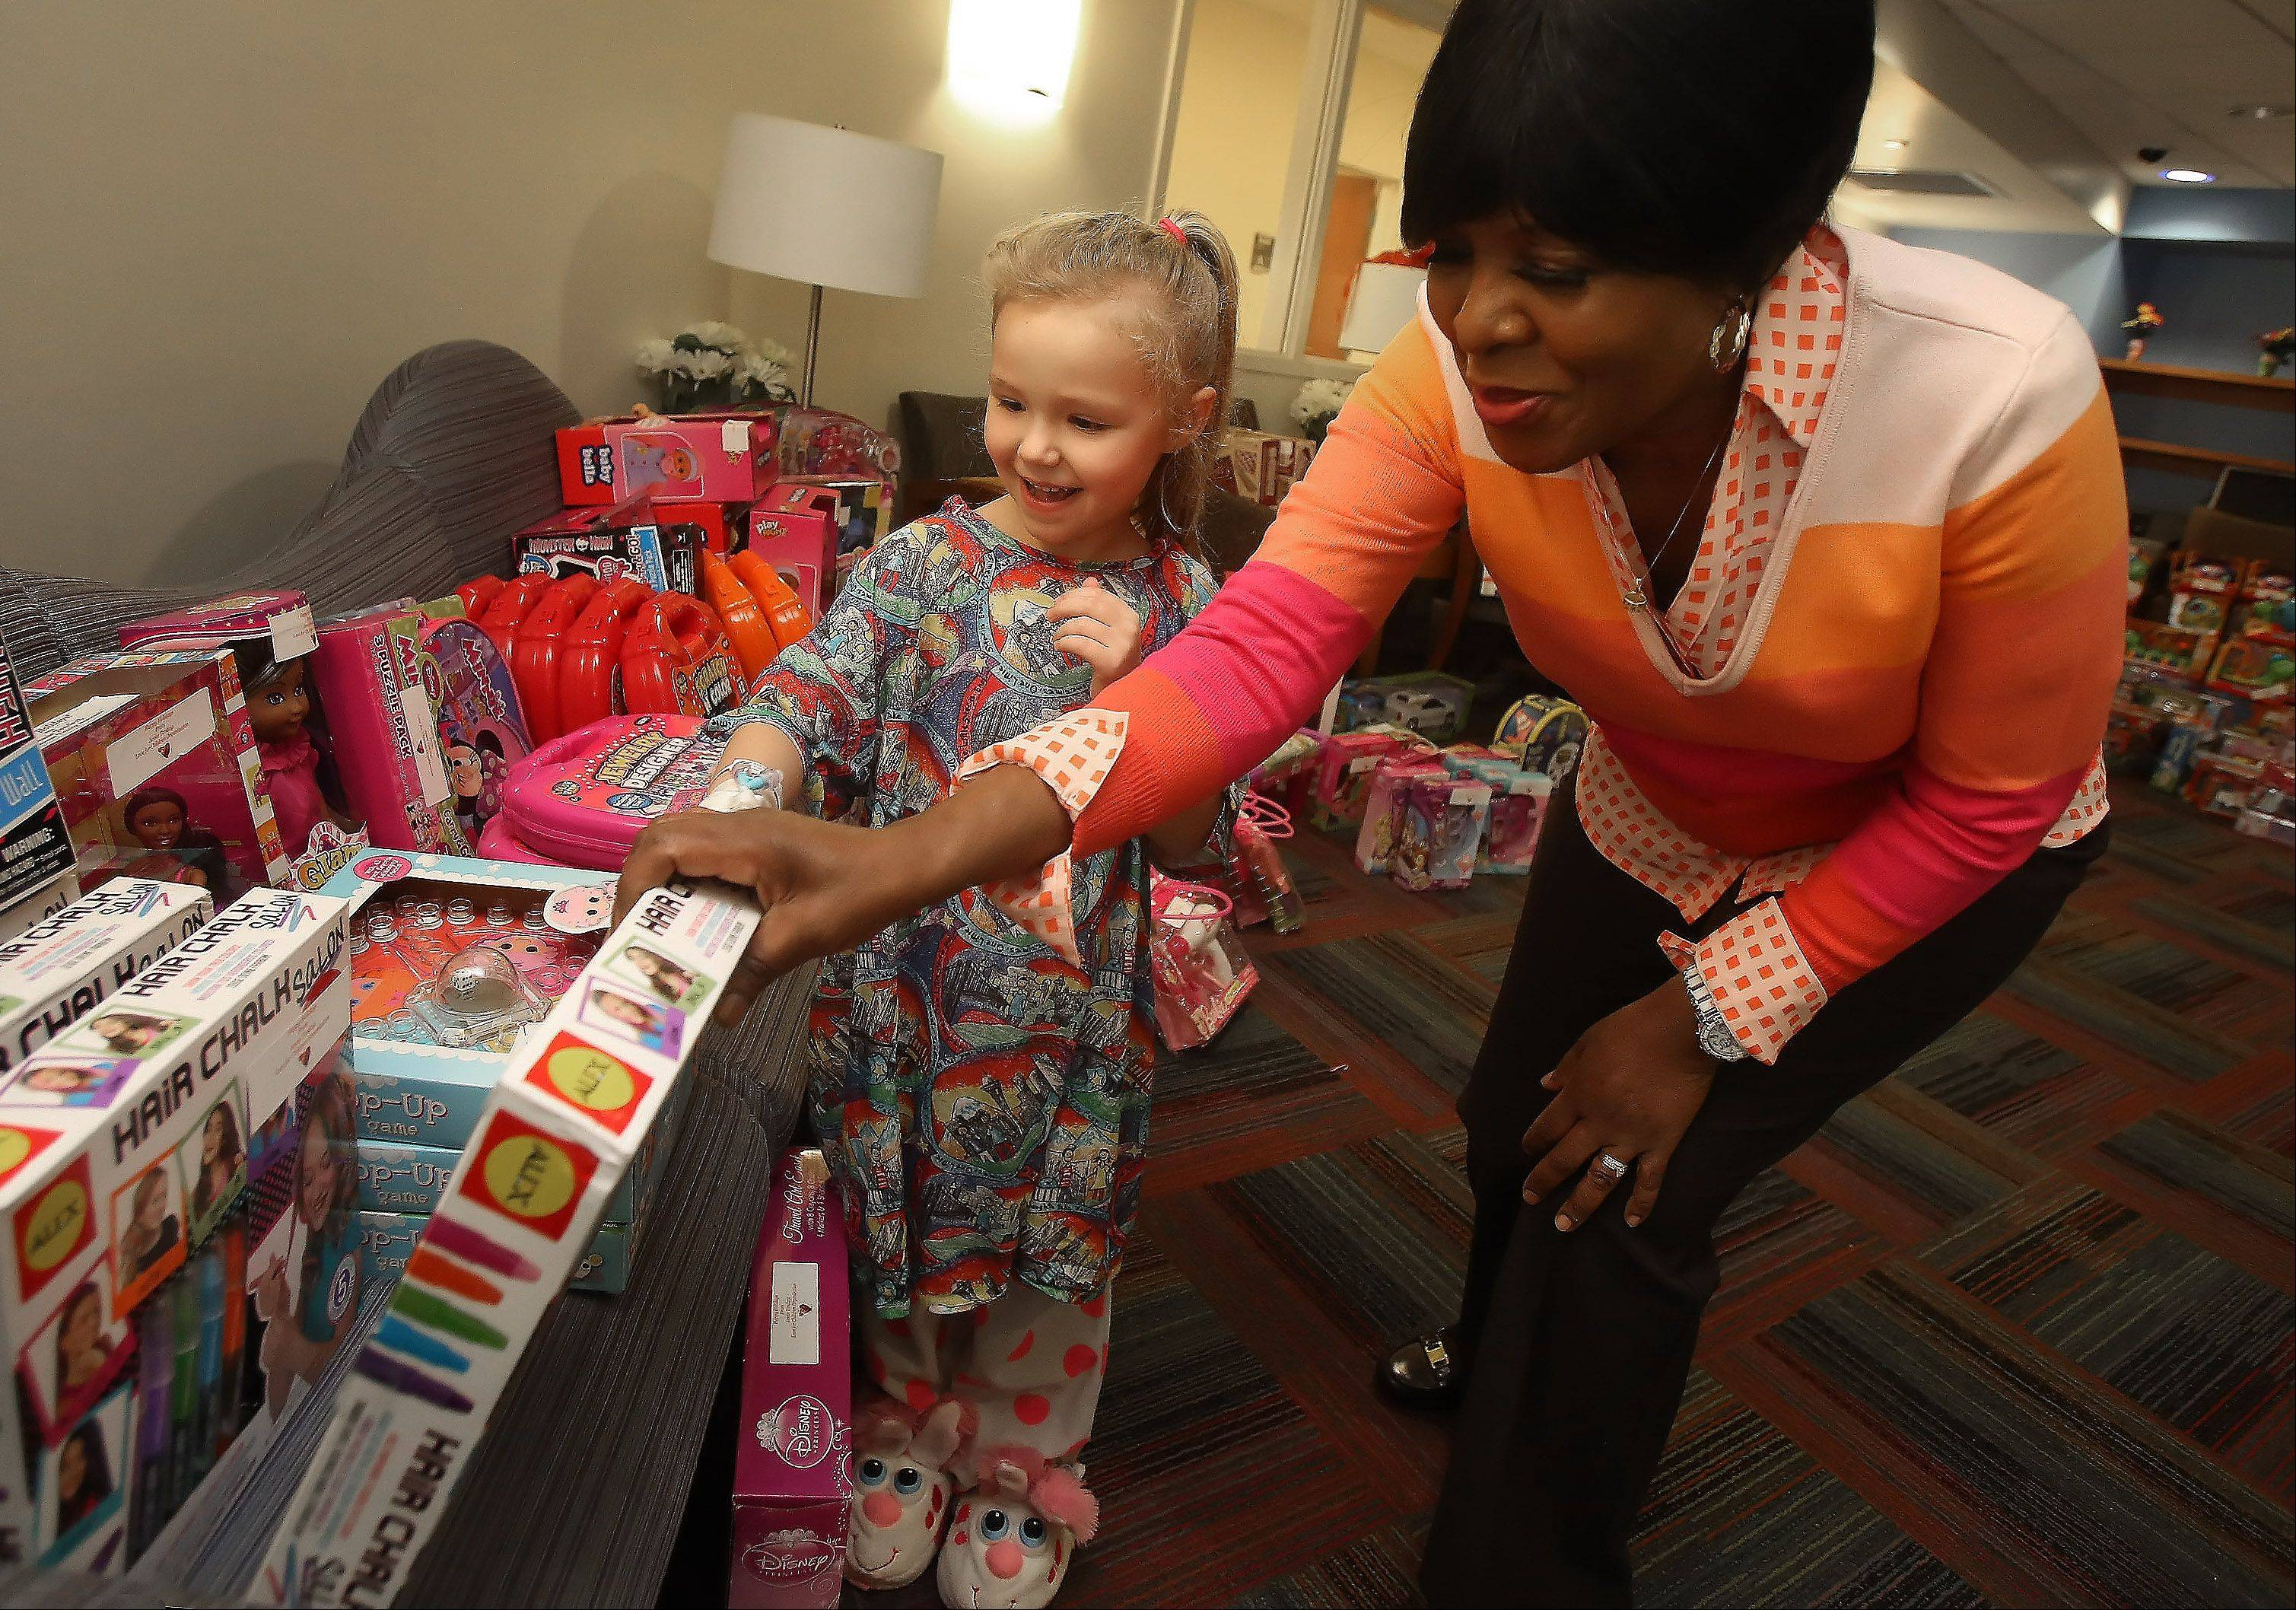 Nicole Ciechanowski, 5, of Morton Grove picks a toy Monday with help from Advocate hospital cafeteria worker Jessie Tendayi at Advocate Children's Hospital in Park Ridge. Tendayi spent $2,200 of her own money to buy about 700 gifts for pediatric patients at Advocate children's hospitals in Park Ridge and Oak Lawn.